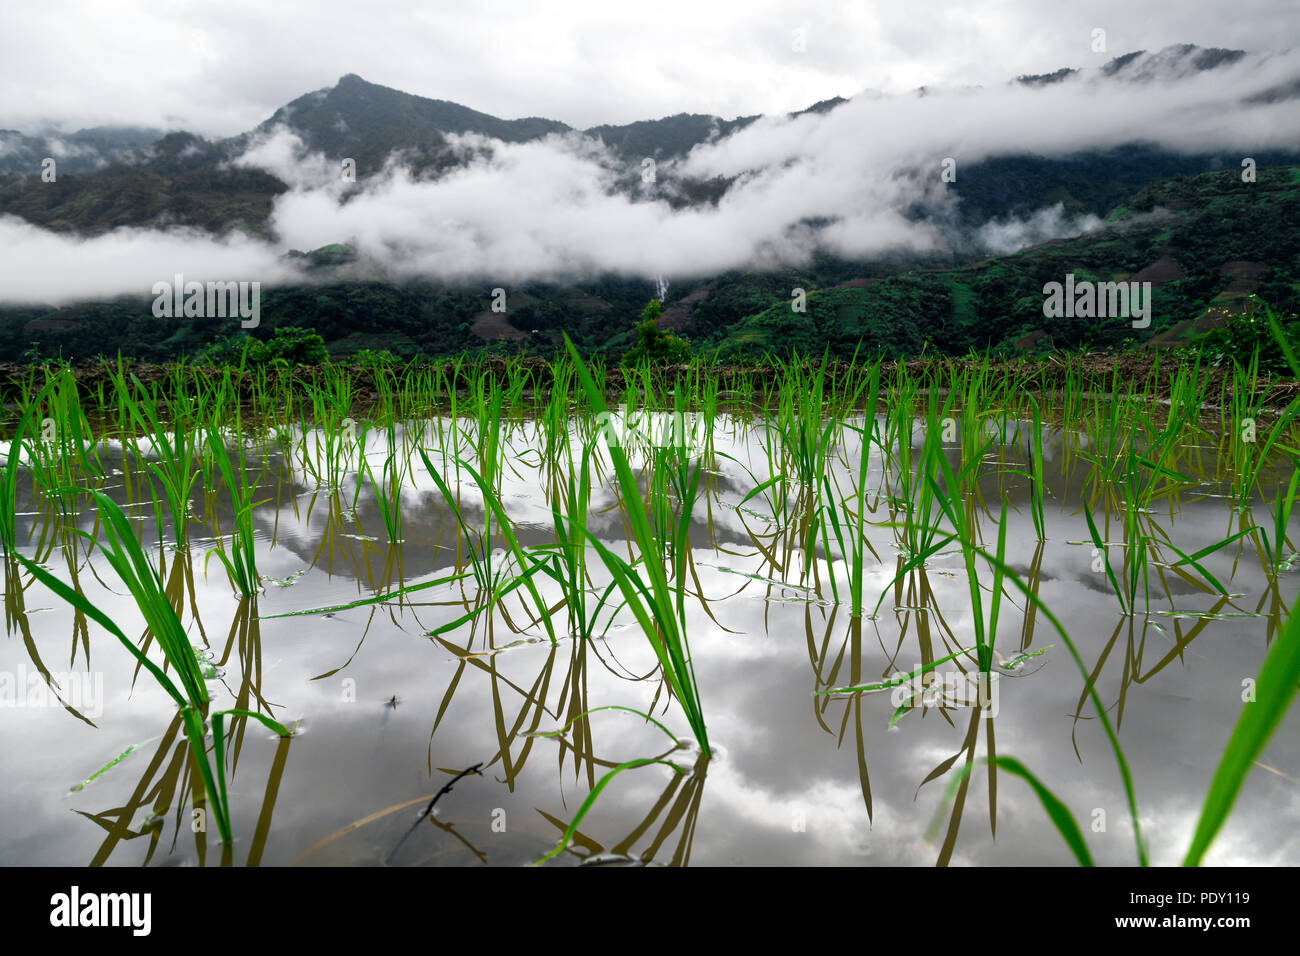 Newly planted rice in terraces in Ha Giang province, northwest Vietnam - Stock Image